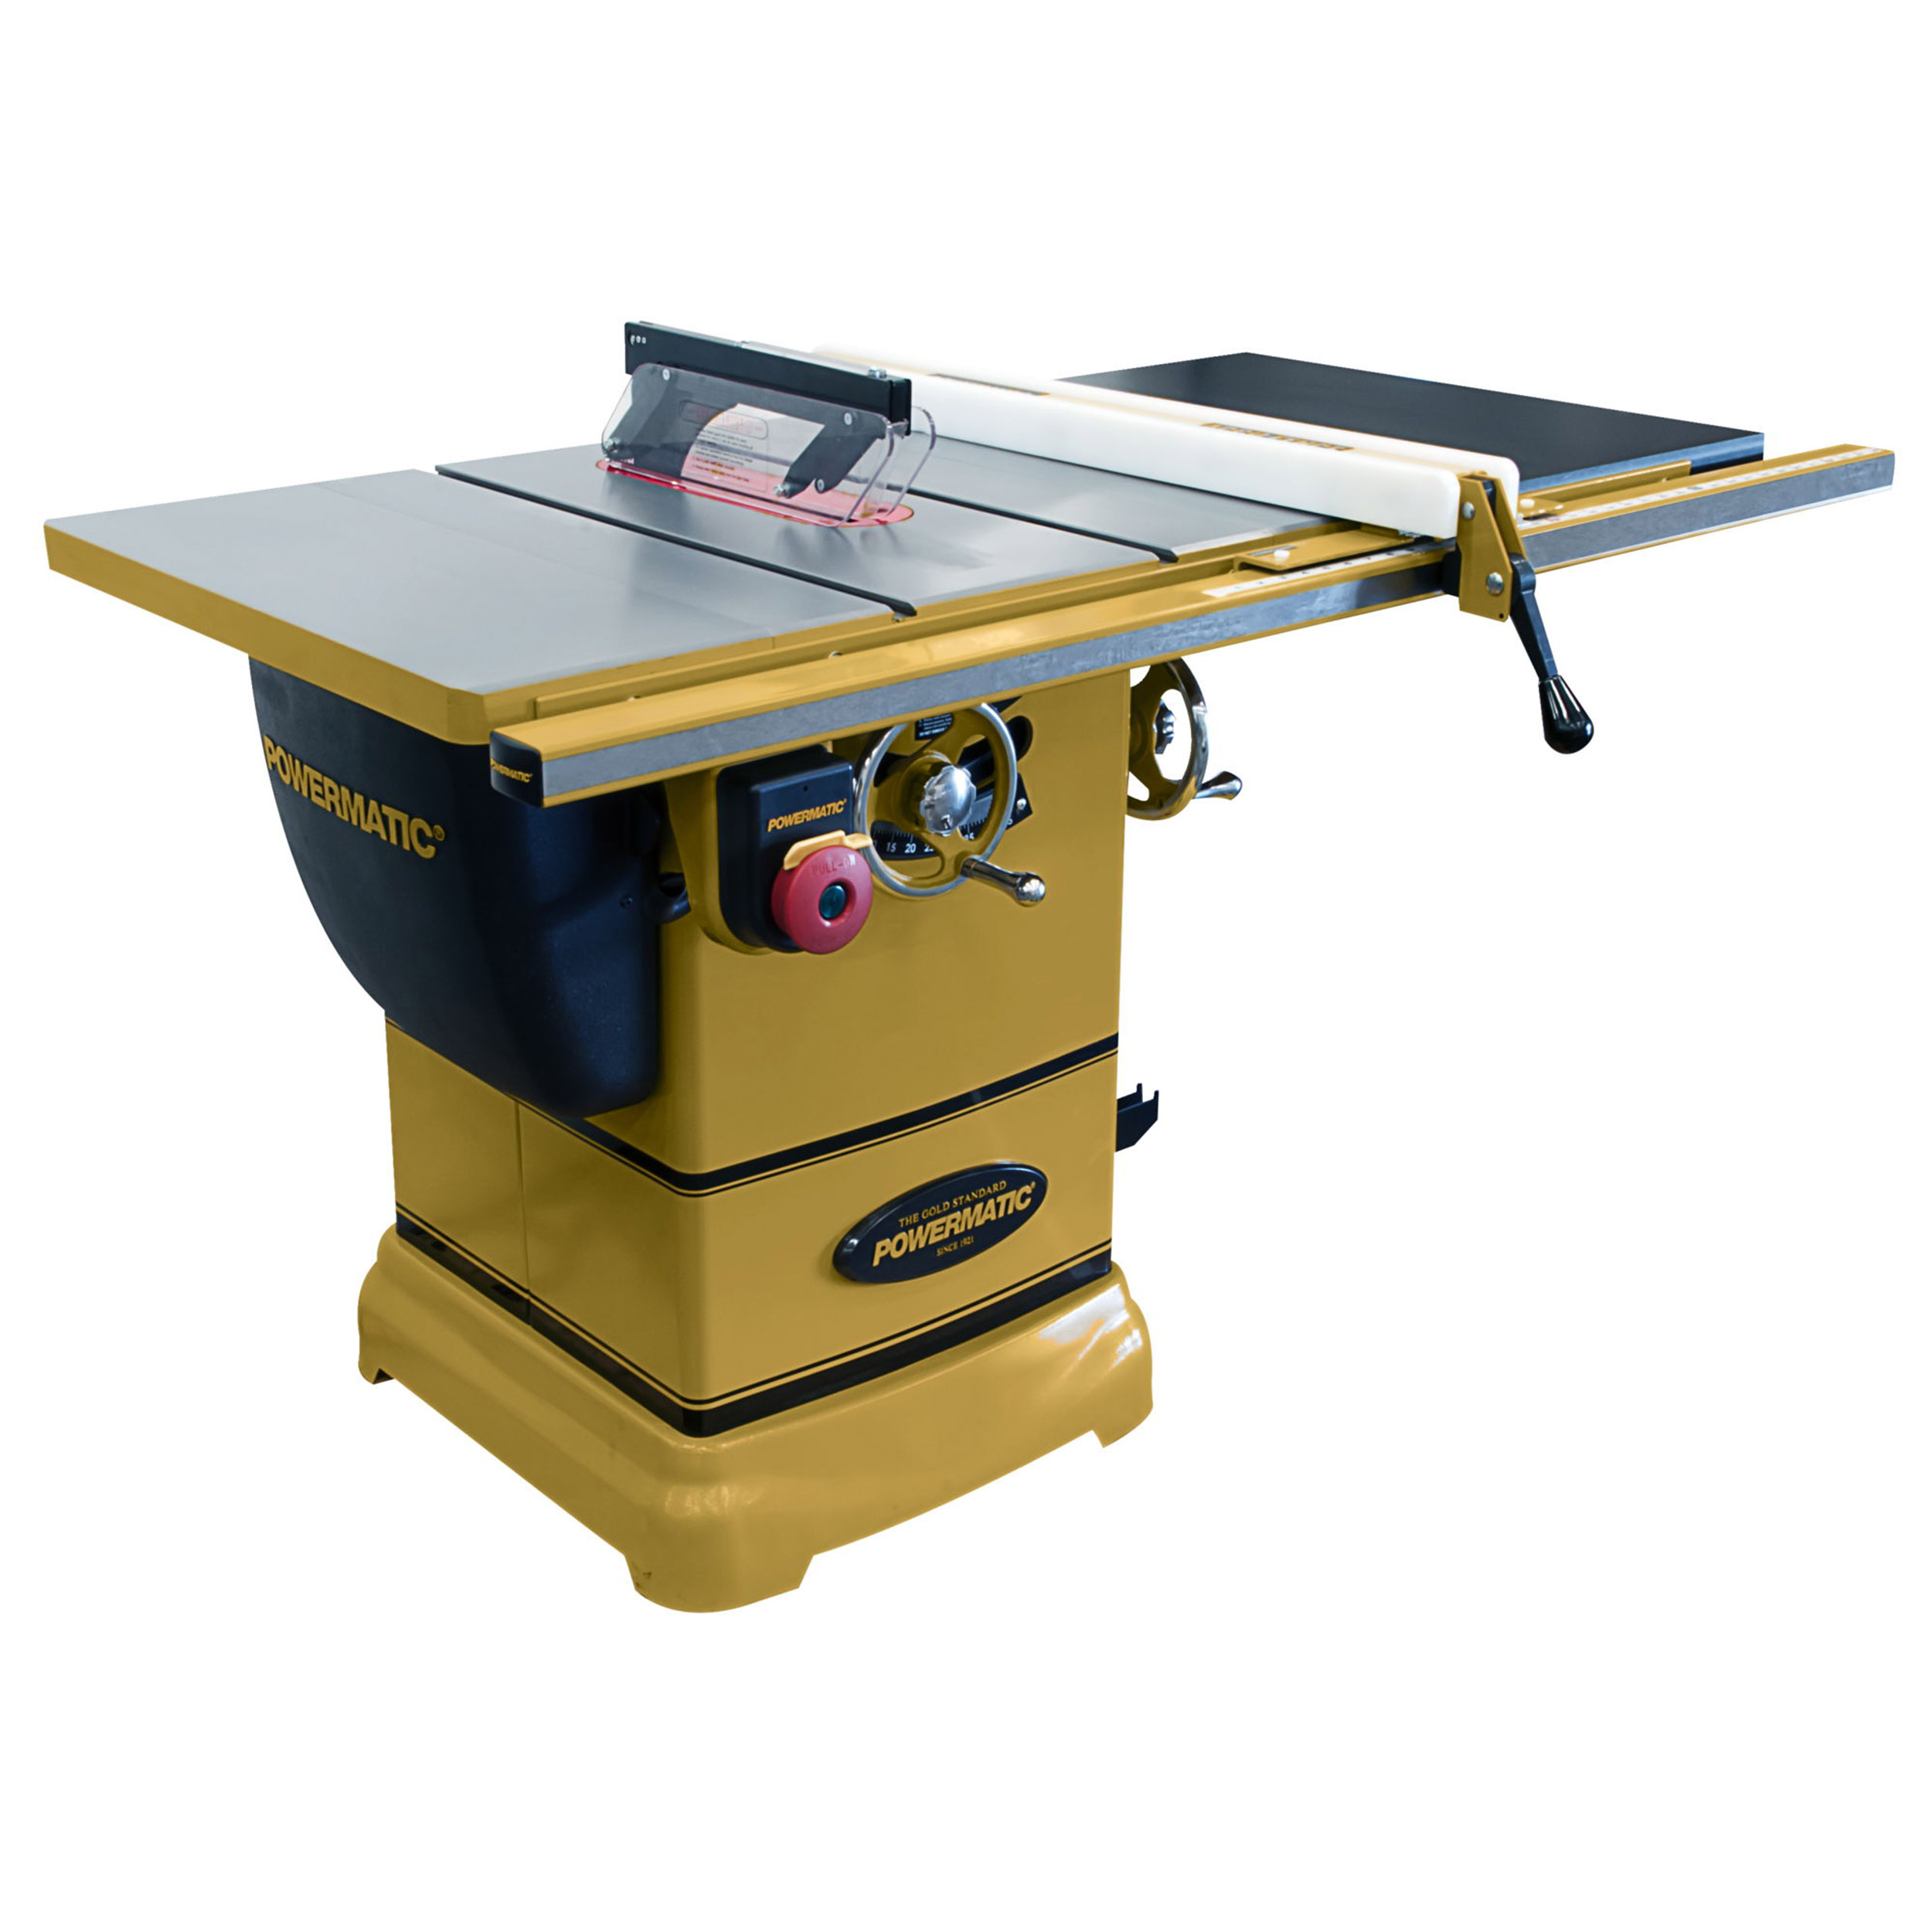 1-3/4HP 1PH 115/230V PM1000 Table Saw with 30